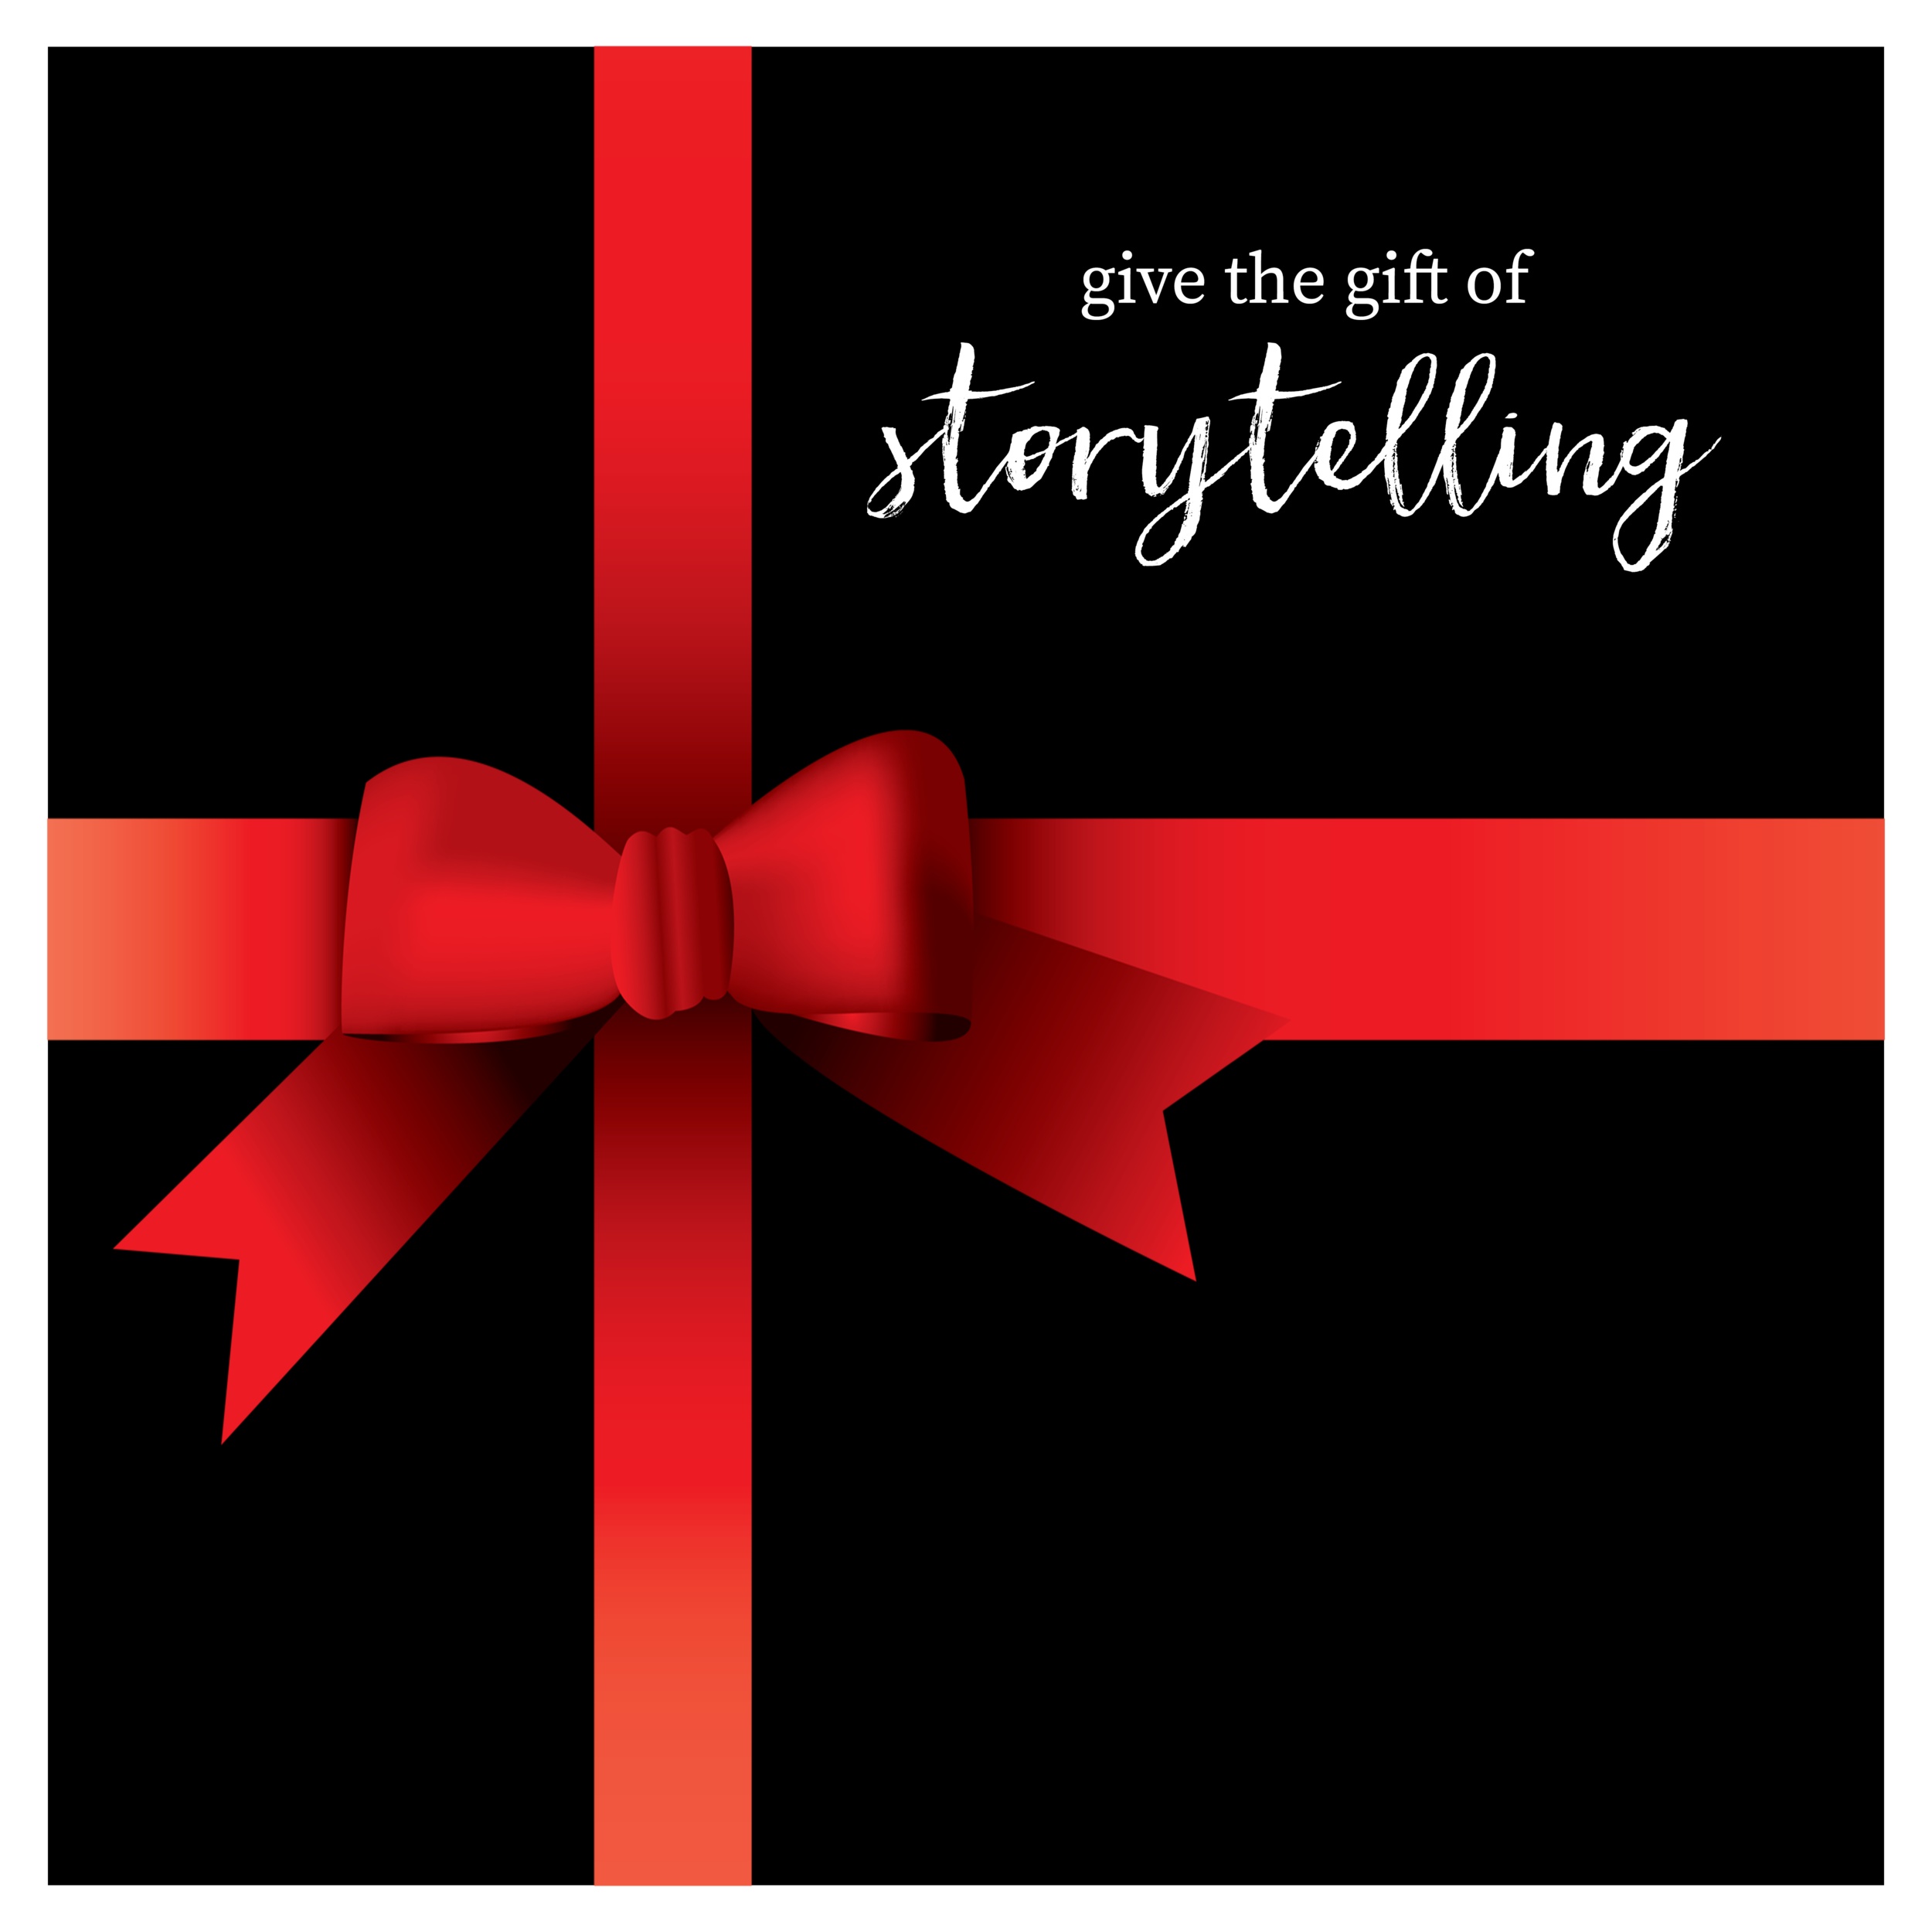 HS now has gift cards available in the store for every storytelling occasion!